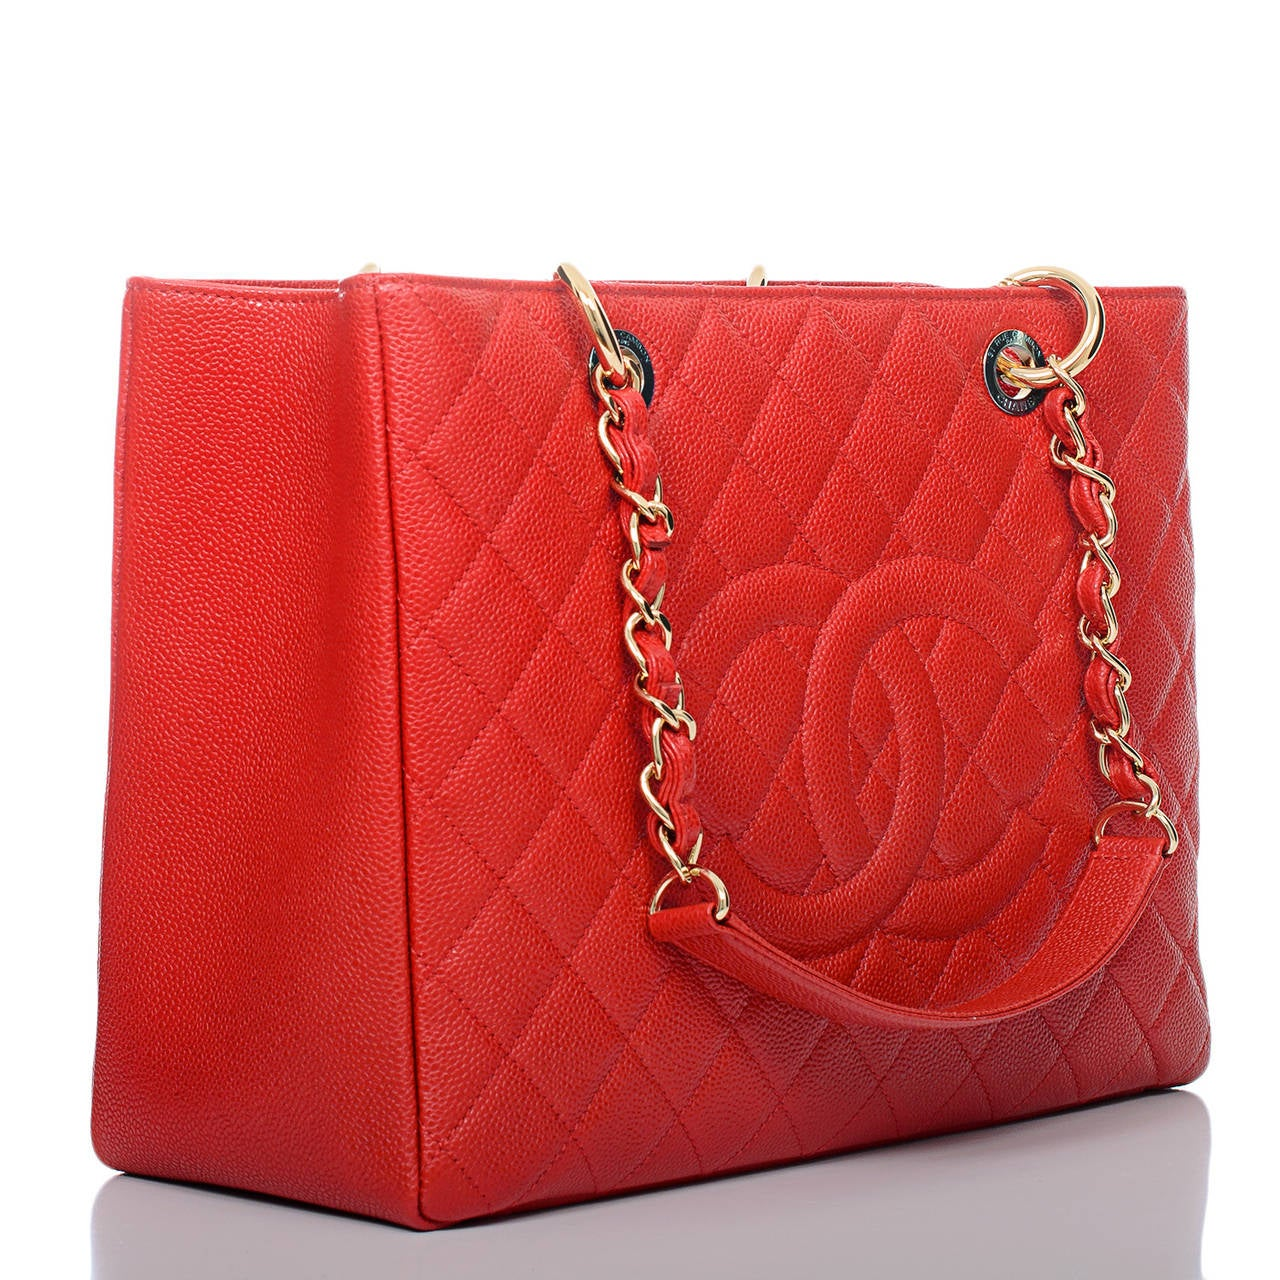 chanel red quilted caviar grand shopper tote gst bag image 2